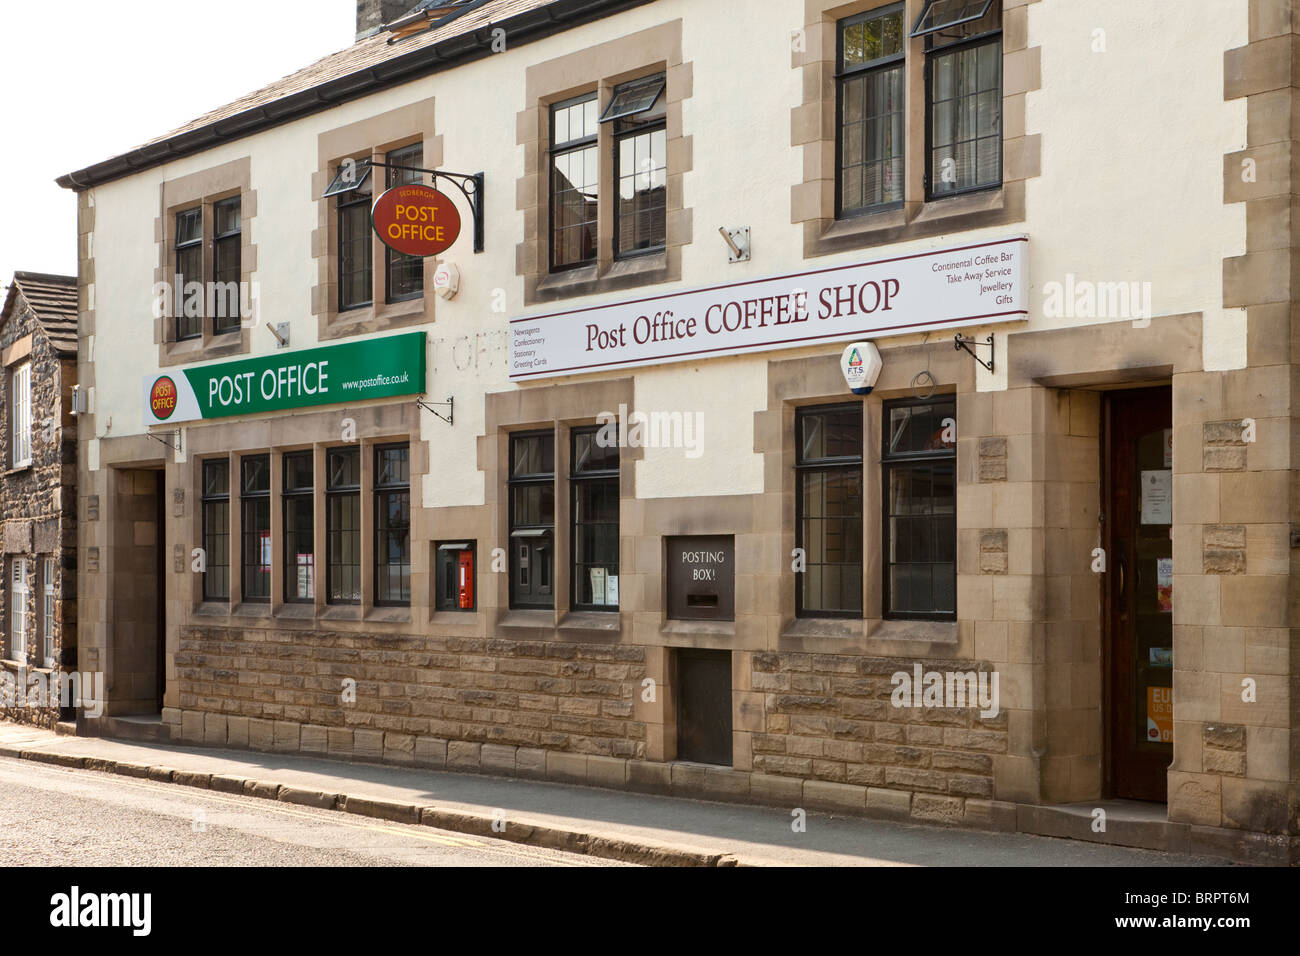 The Post Office and Post Office Coffee Shop in Sedbergh, Cumbria - Stock Image